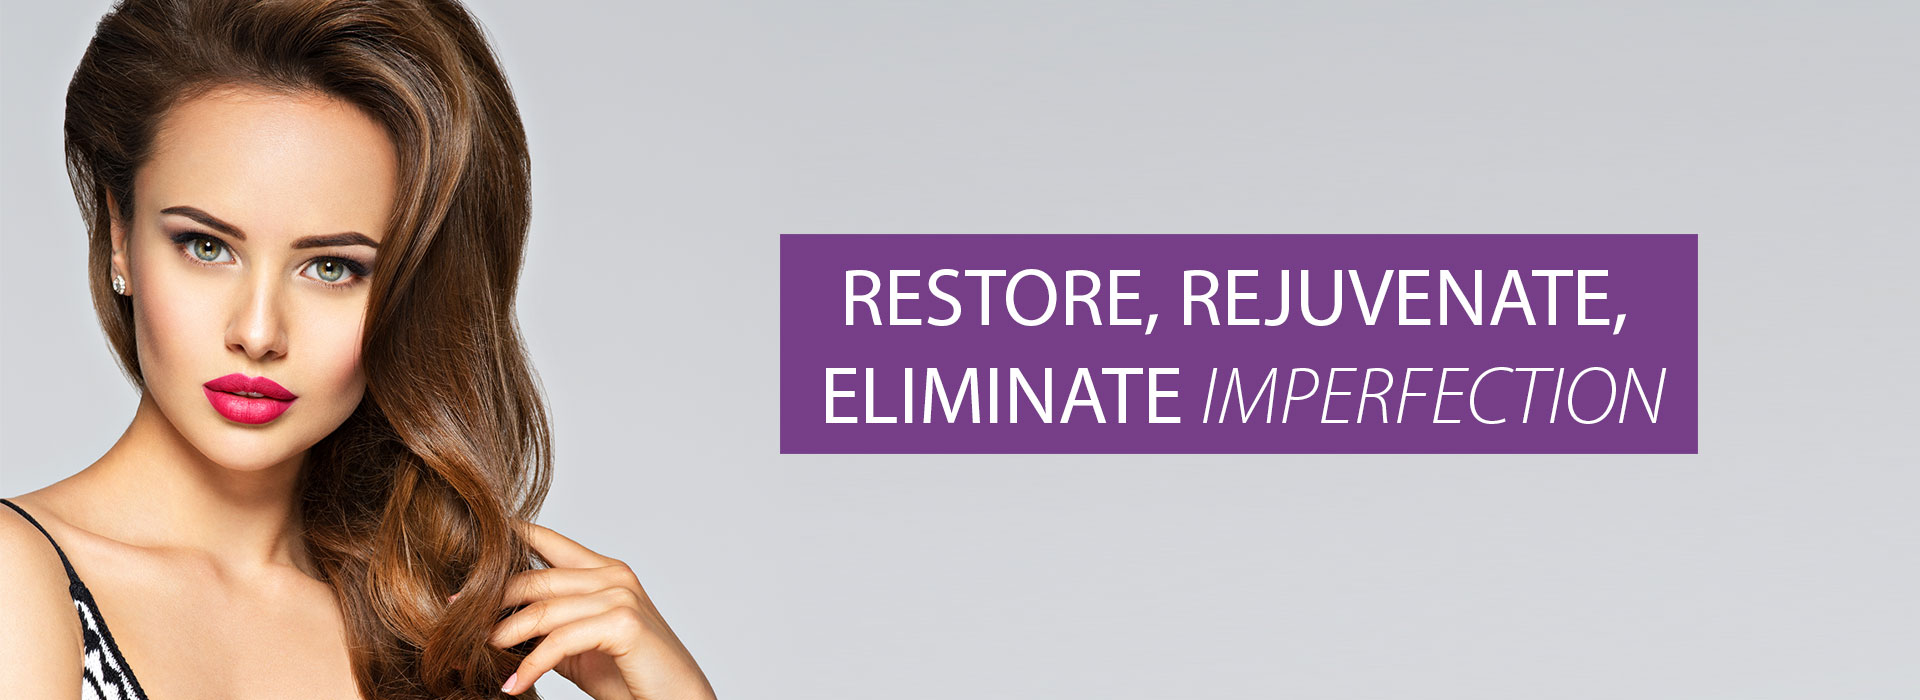 restylane-removal-fine-lines-wrinkles-facial-imperfectios-lake-norman-aesthetics-concierge-med-spa-laser-center-mooresville-nc-28117